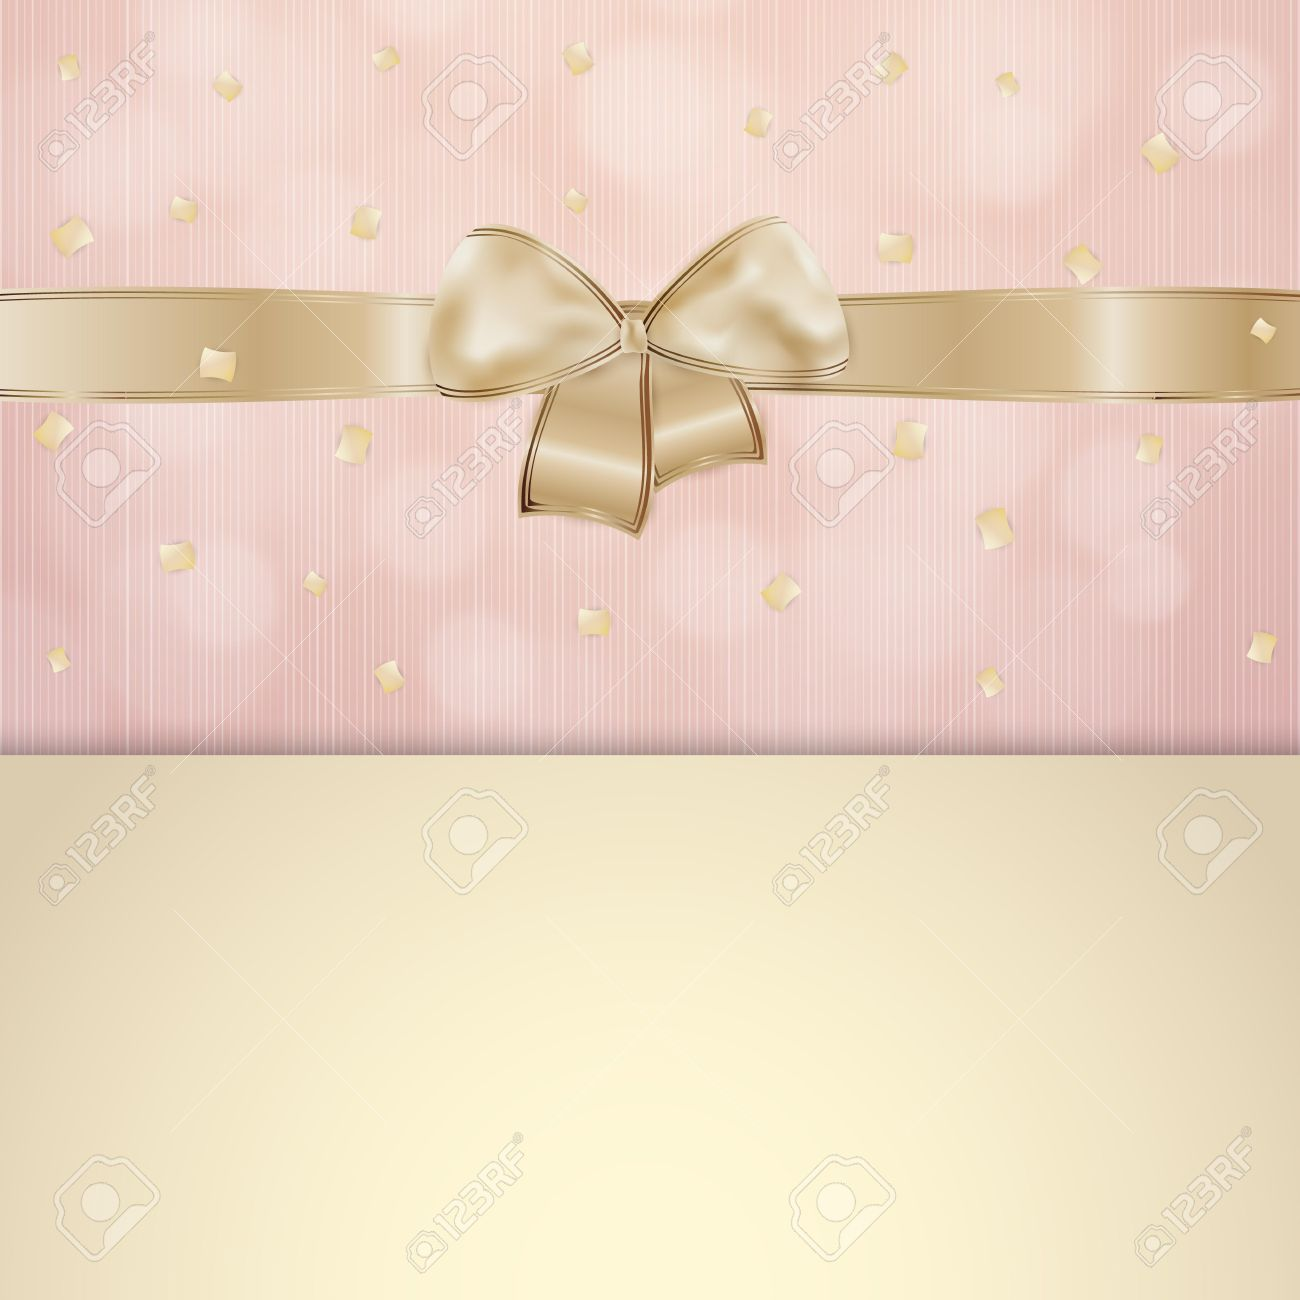 Invitation card with gold ribbon and bow with pink and beige invitation card with gold ribbon and bow with pink and beige background with falling confetti stock stopboris Choice Image